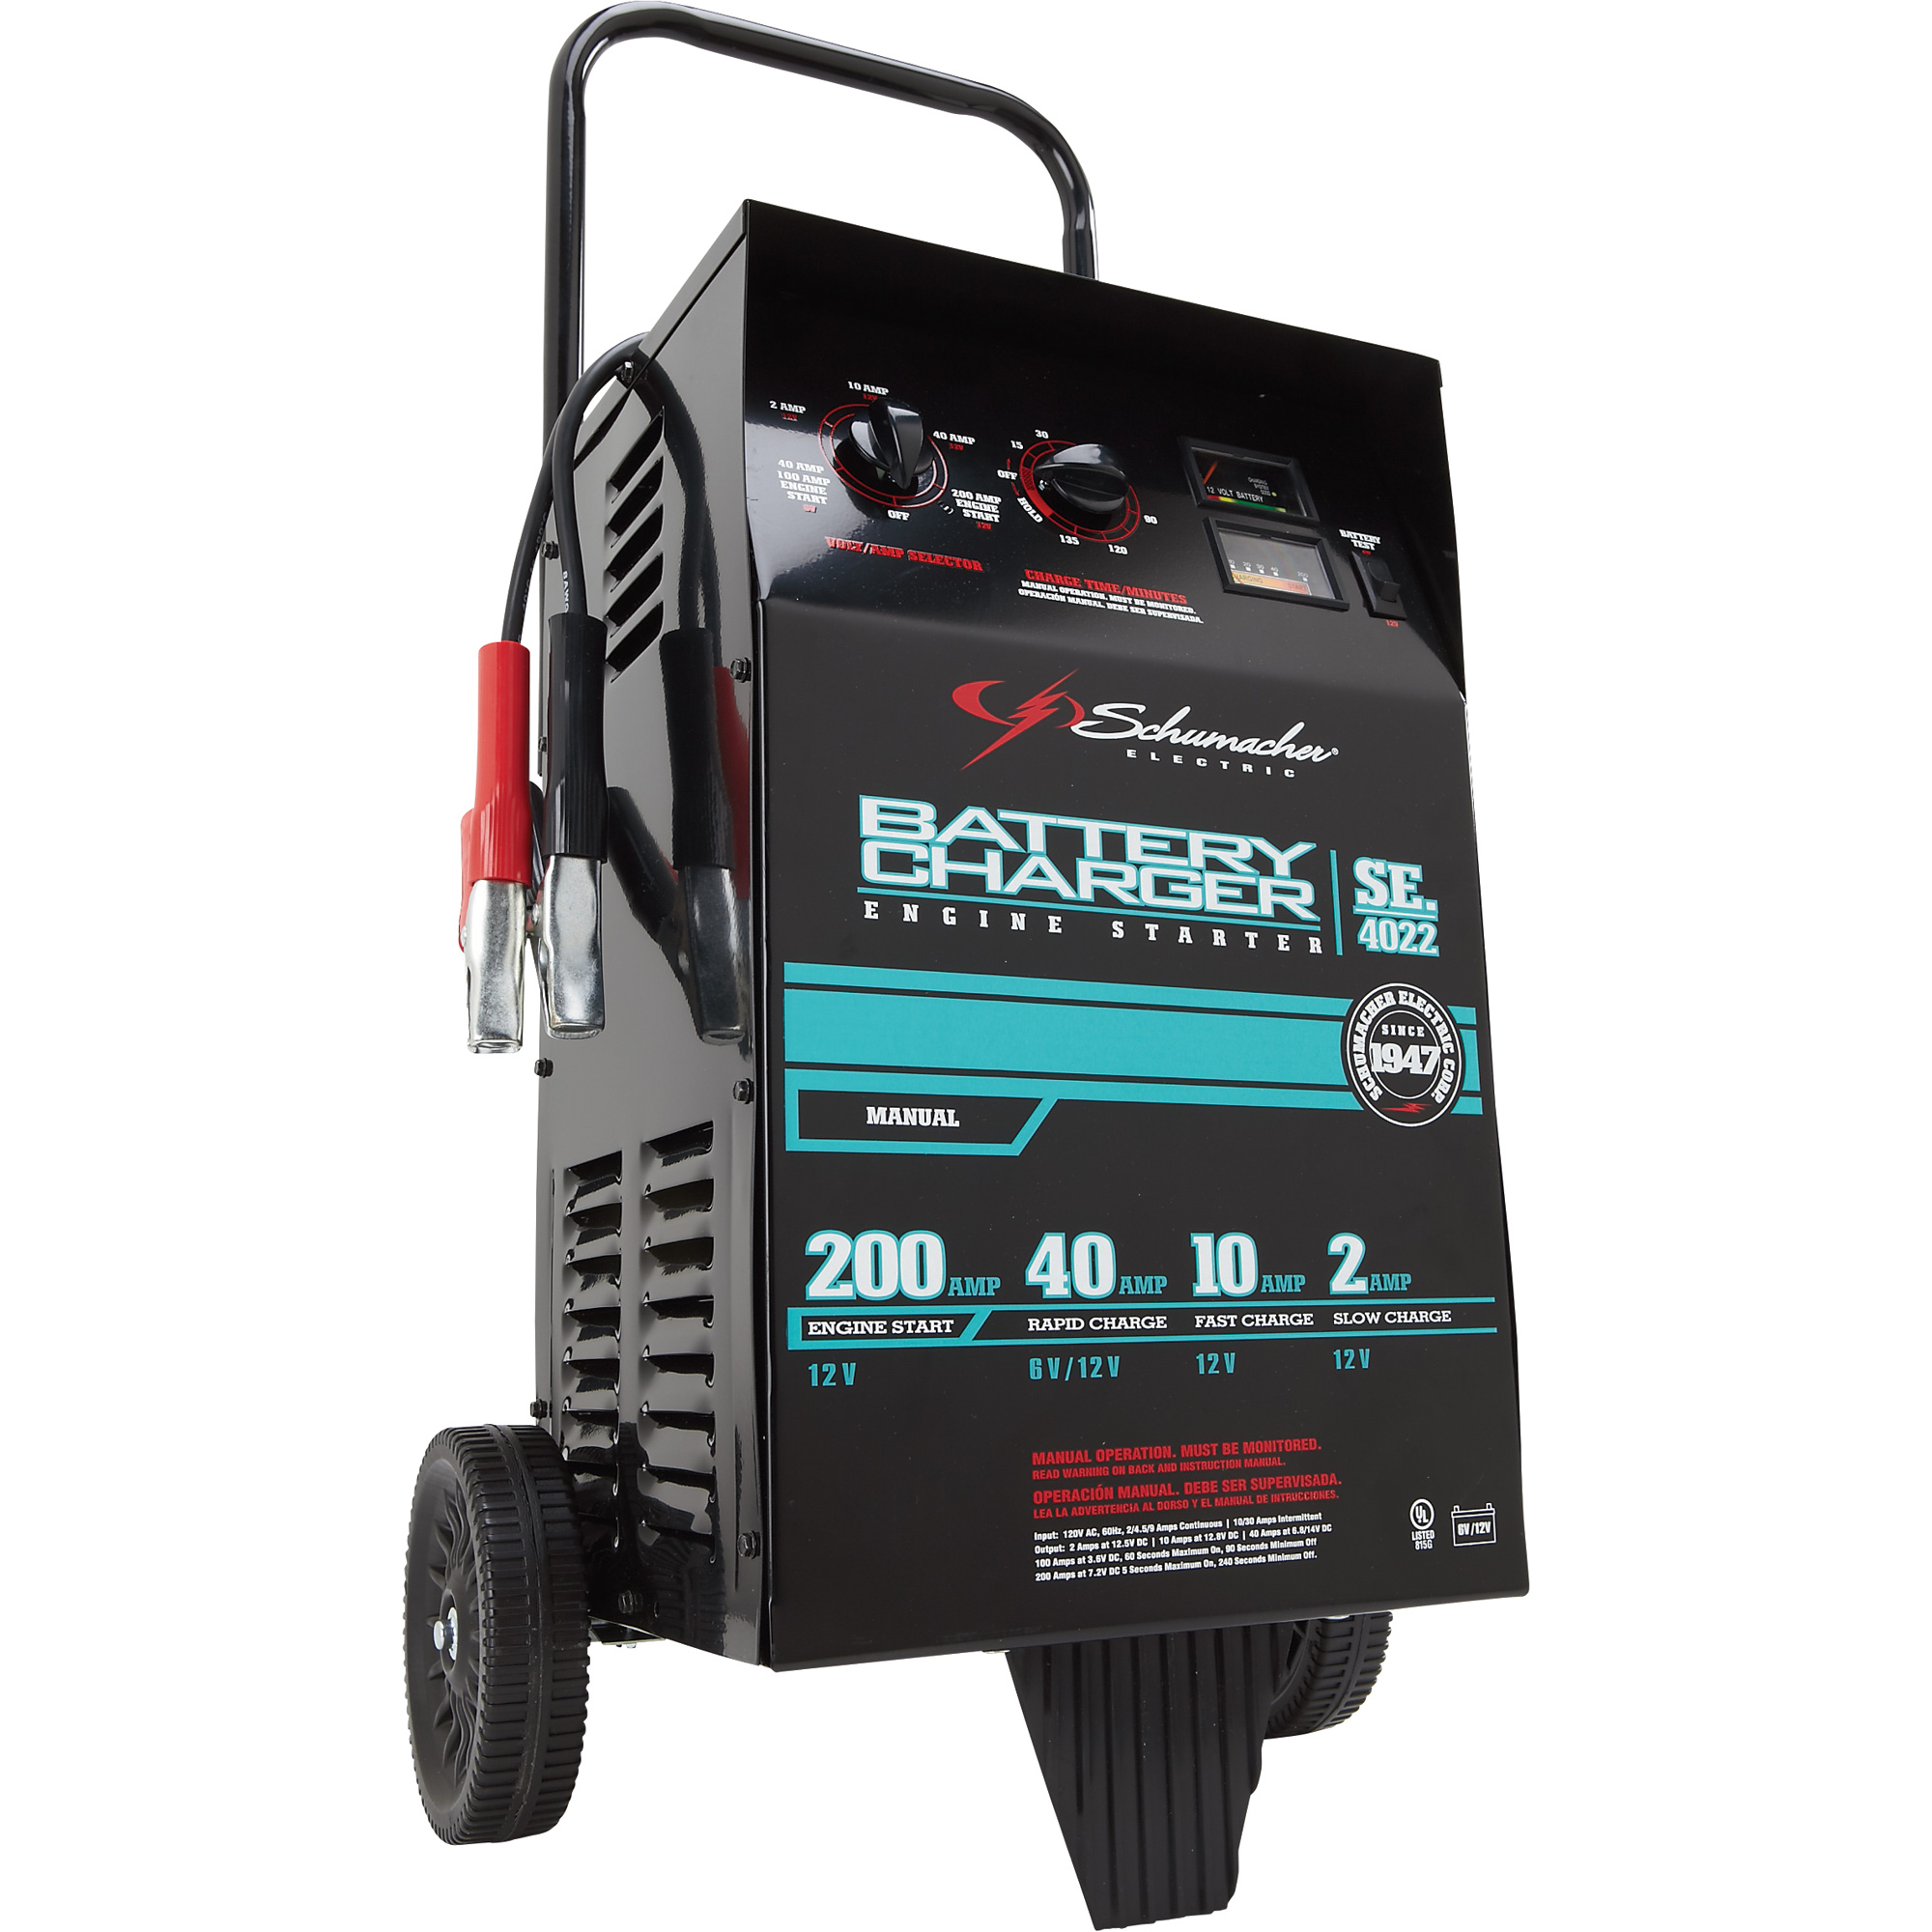 1677826_2000x2000 schumacher wheeled battery charger with engine start 6 12 volt schumacher battery charger se 4022 wiring diagram at eliteediting.co